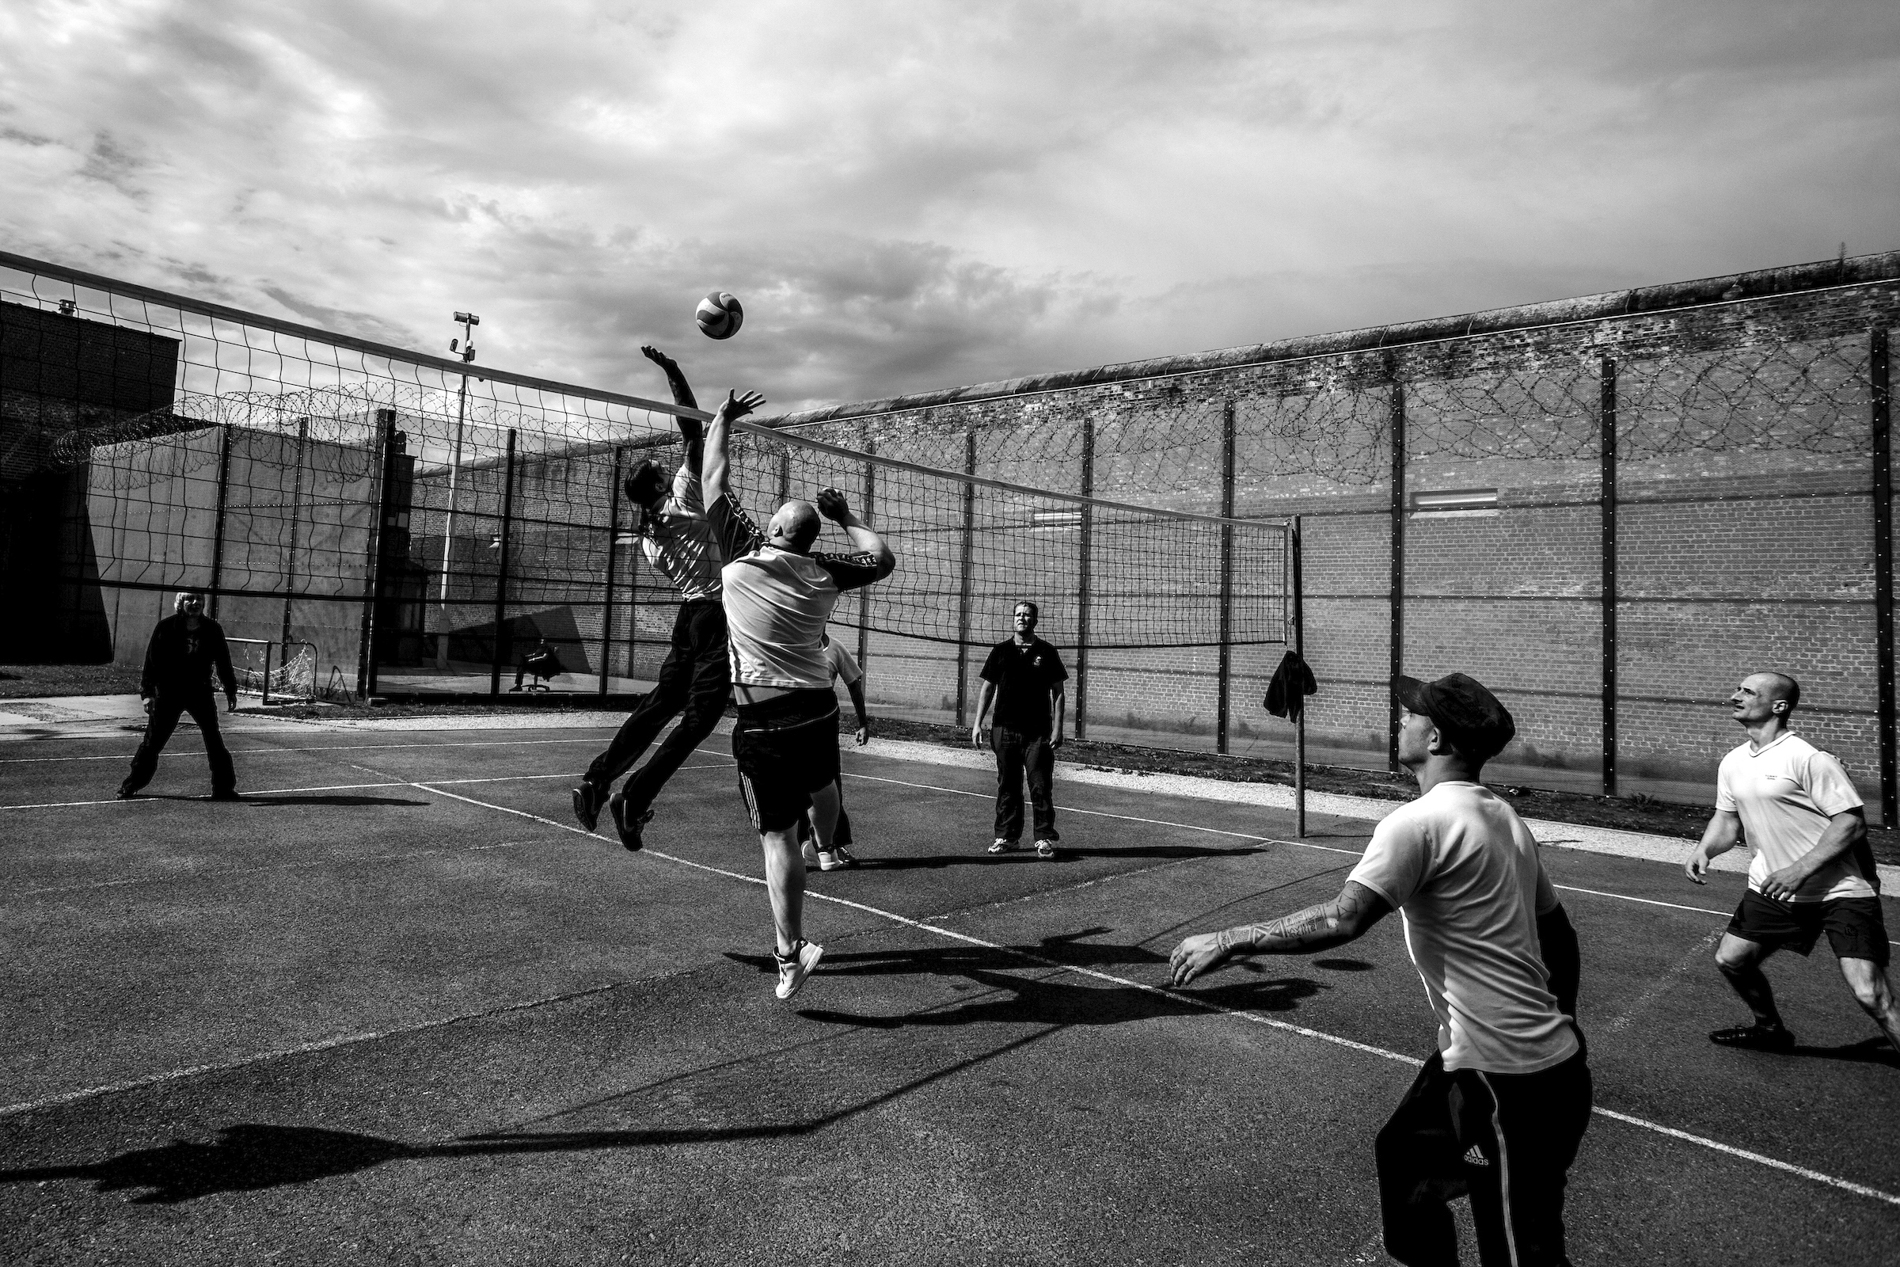 Long term prisoners are playing volleyball in the courtyard of Audenaarde's prison. Belgium, August 2014  © Sébastien Van Malleghem